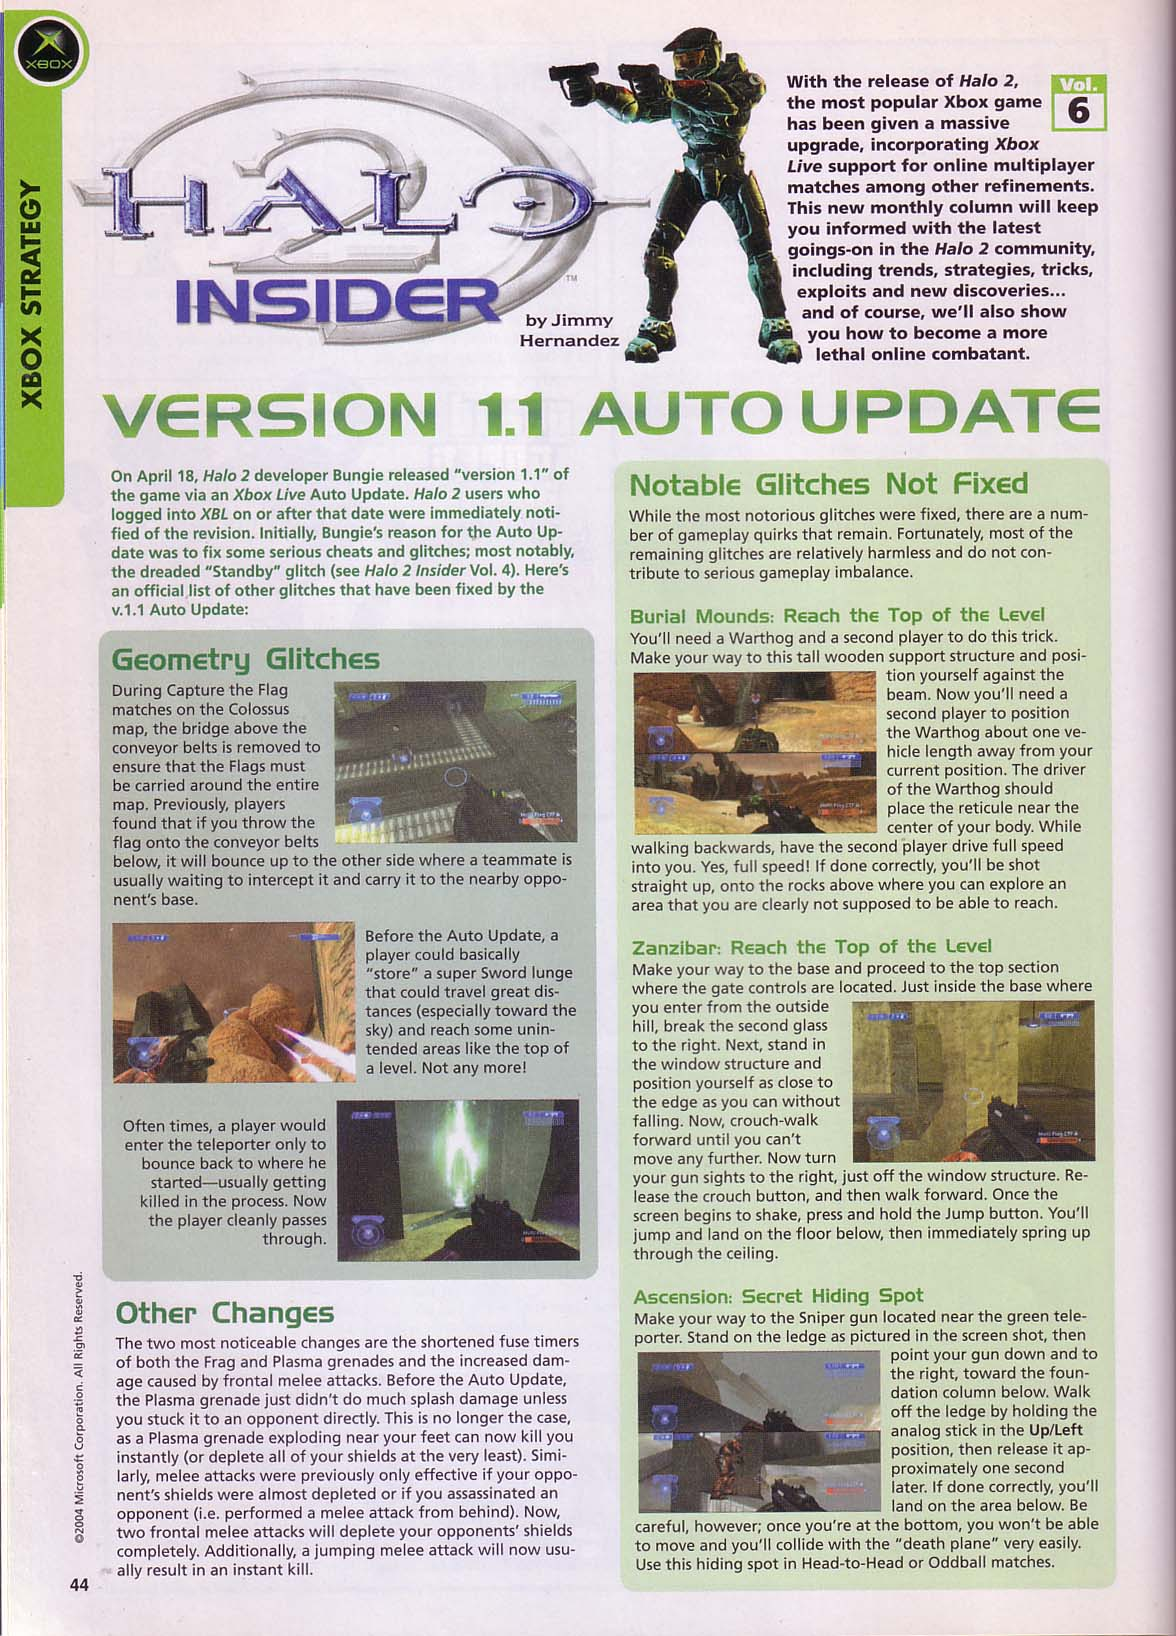 TipsandTricks_June_2005_Halo_pg1_Strategy.jpg